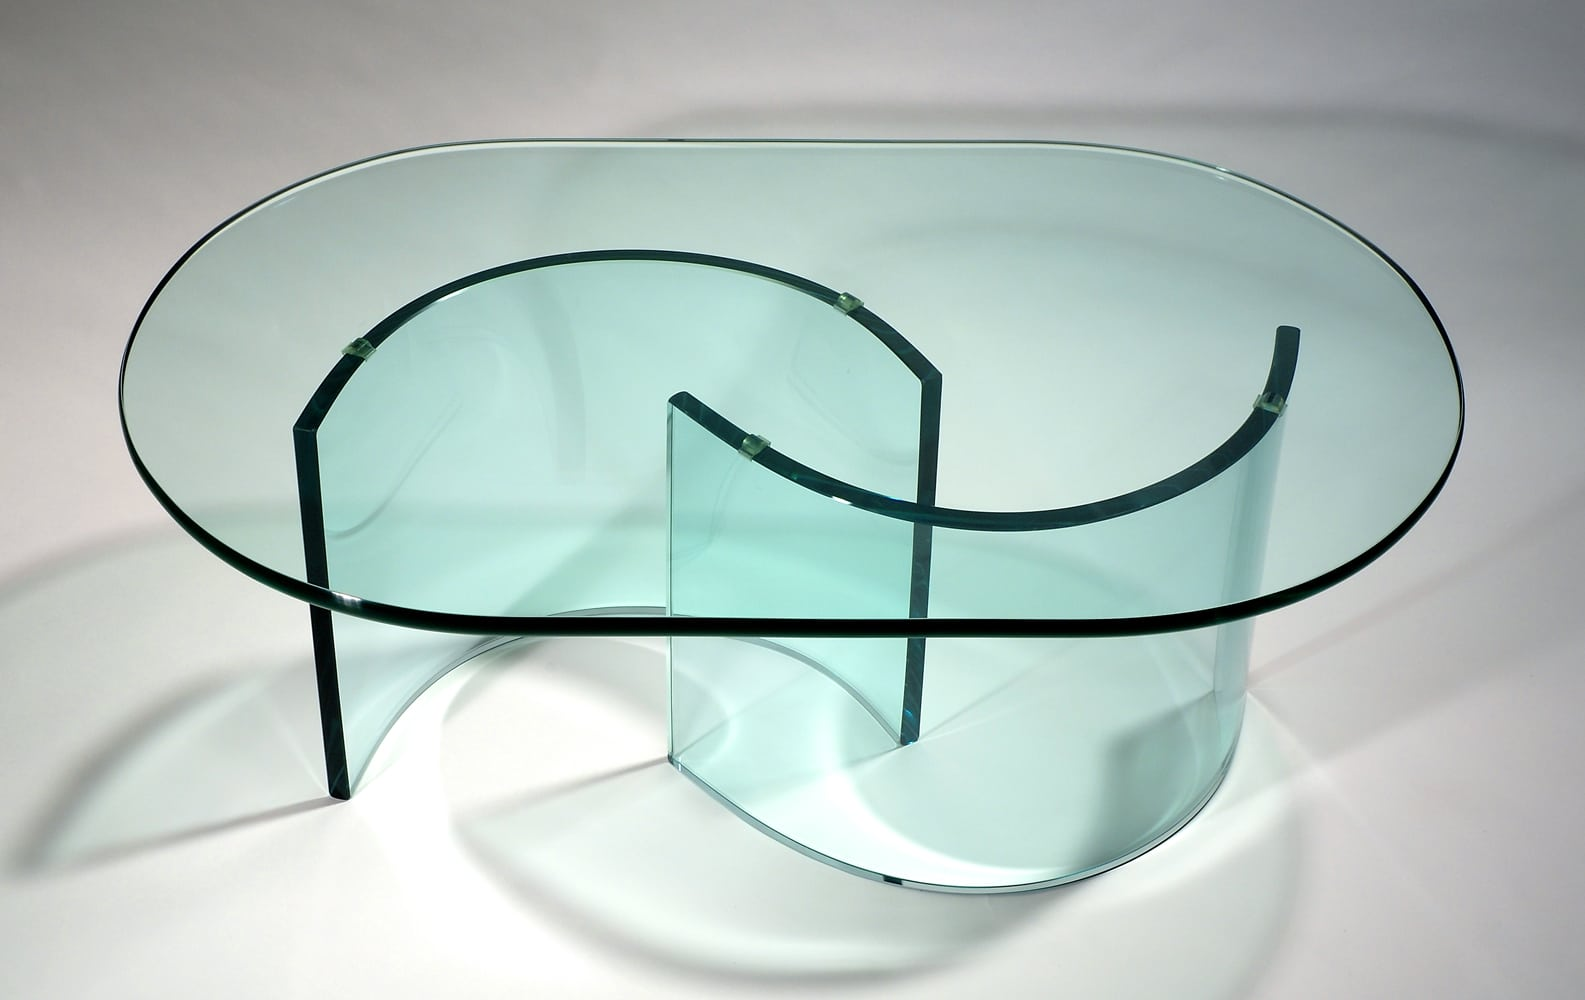 Oval Blue glass table with half circle legs with light shining through onto white background Product Photography